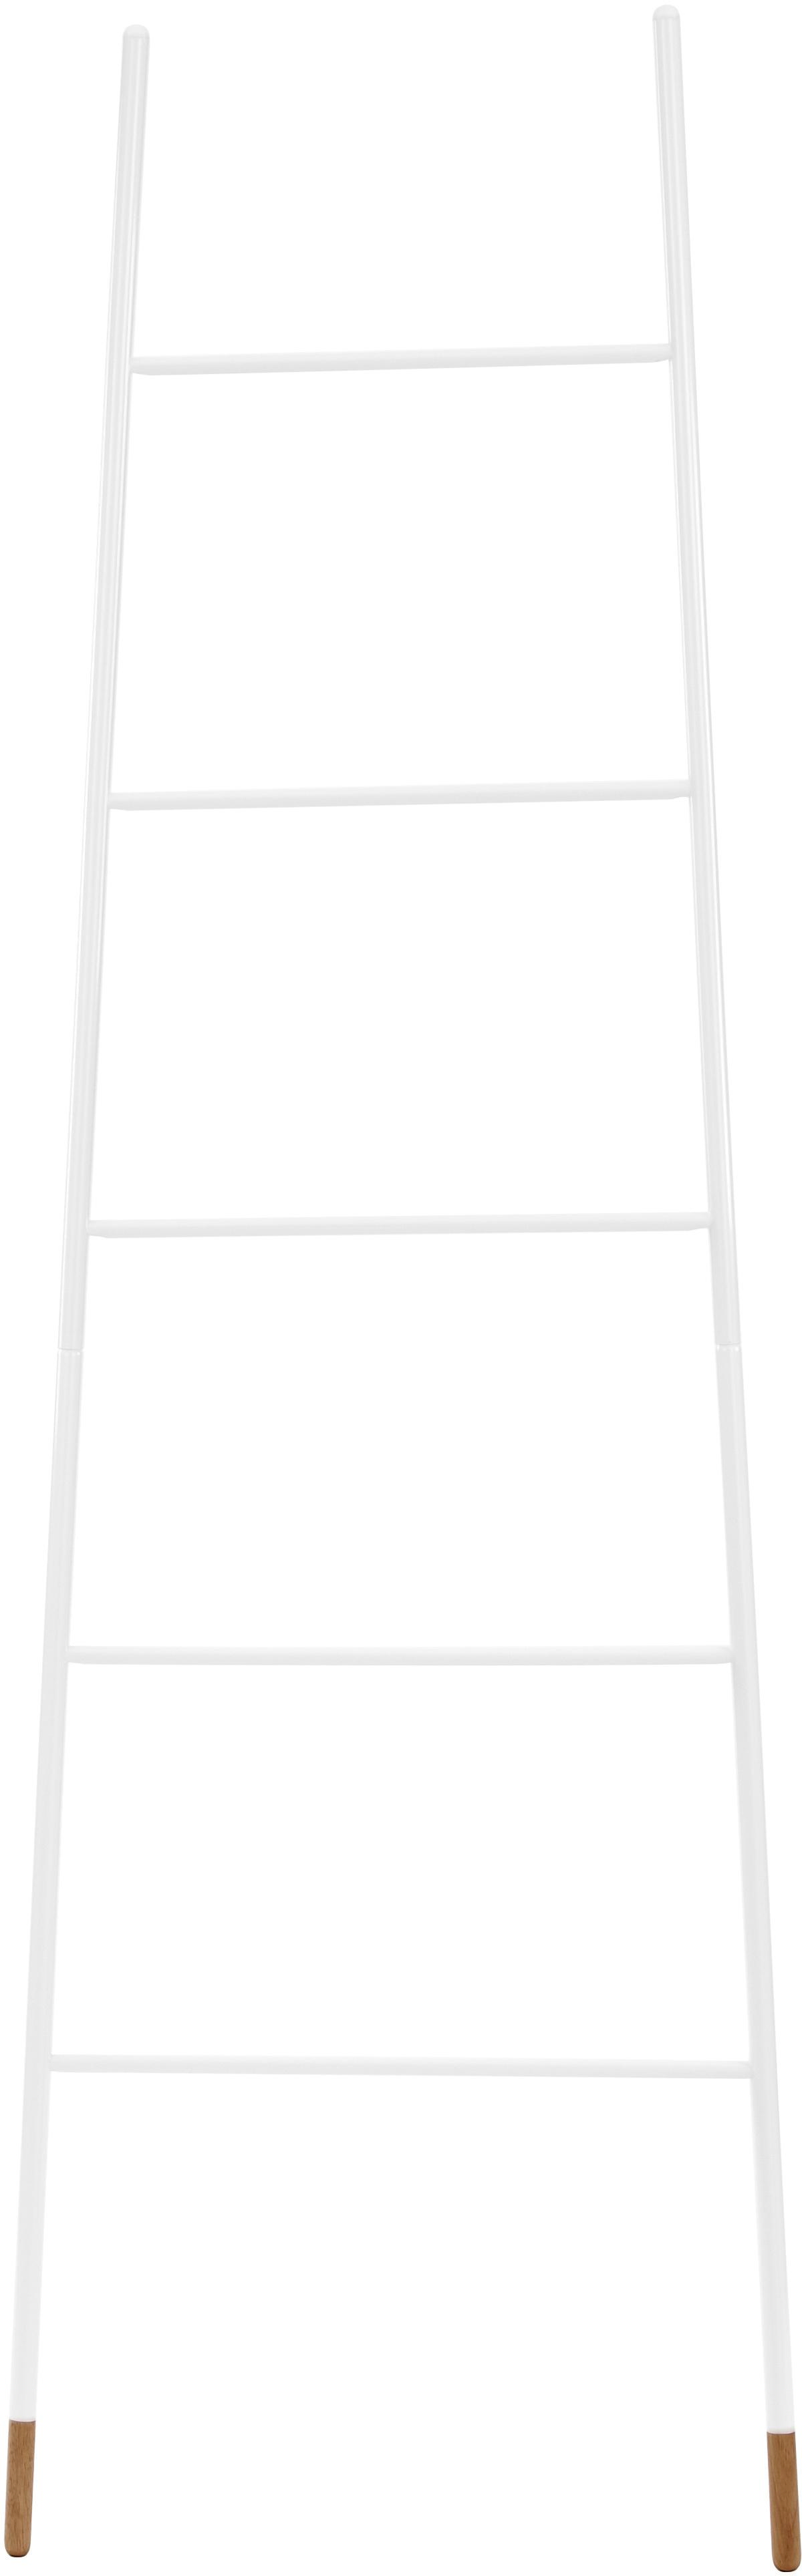 Handtuchleiter Rack Ladder in Weiss, Weiss, 54 x 175 cm